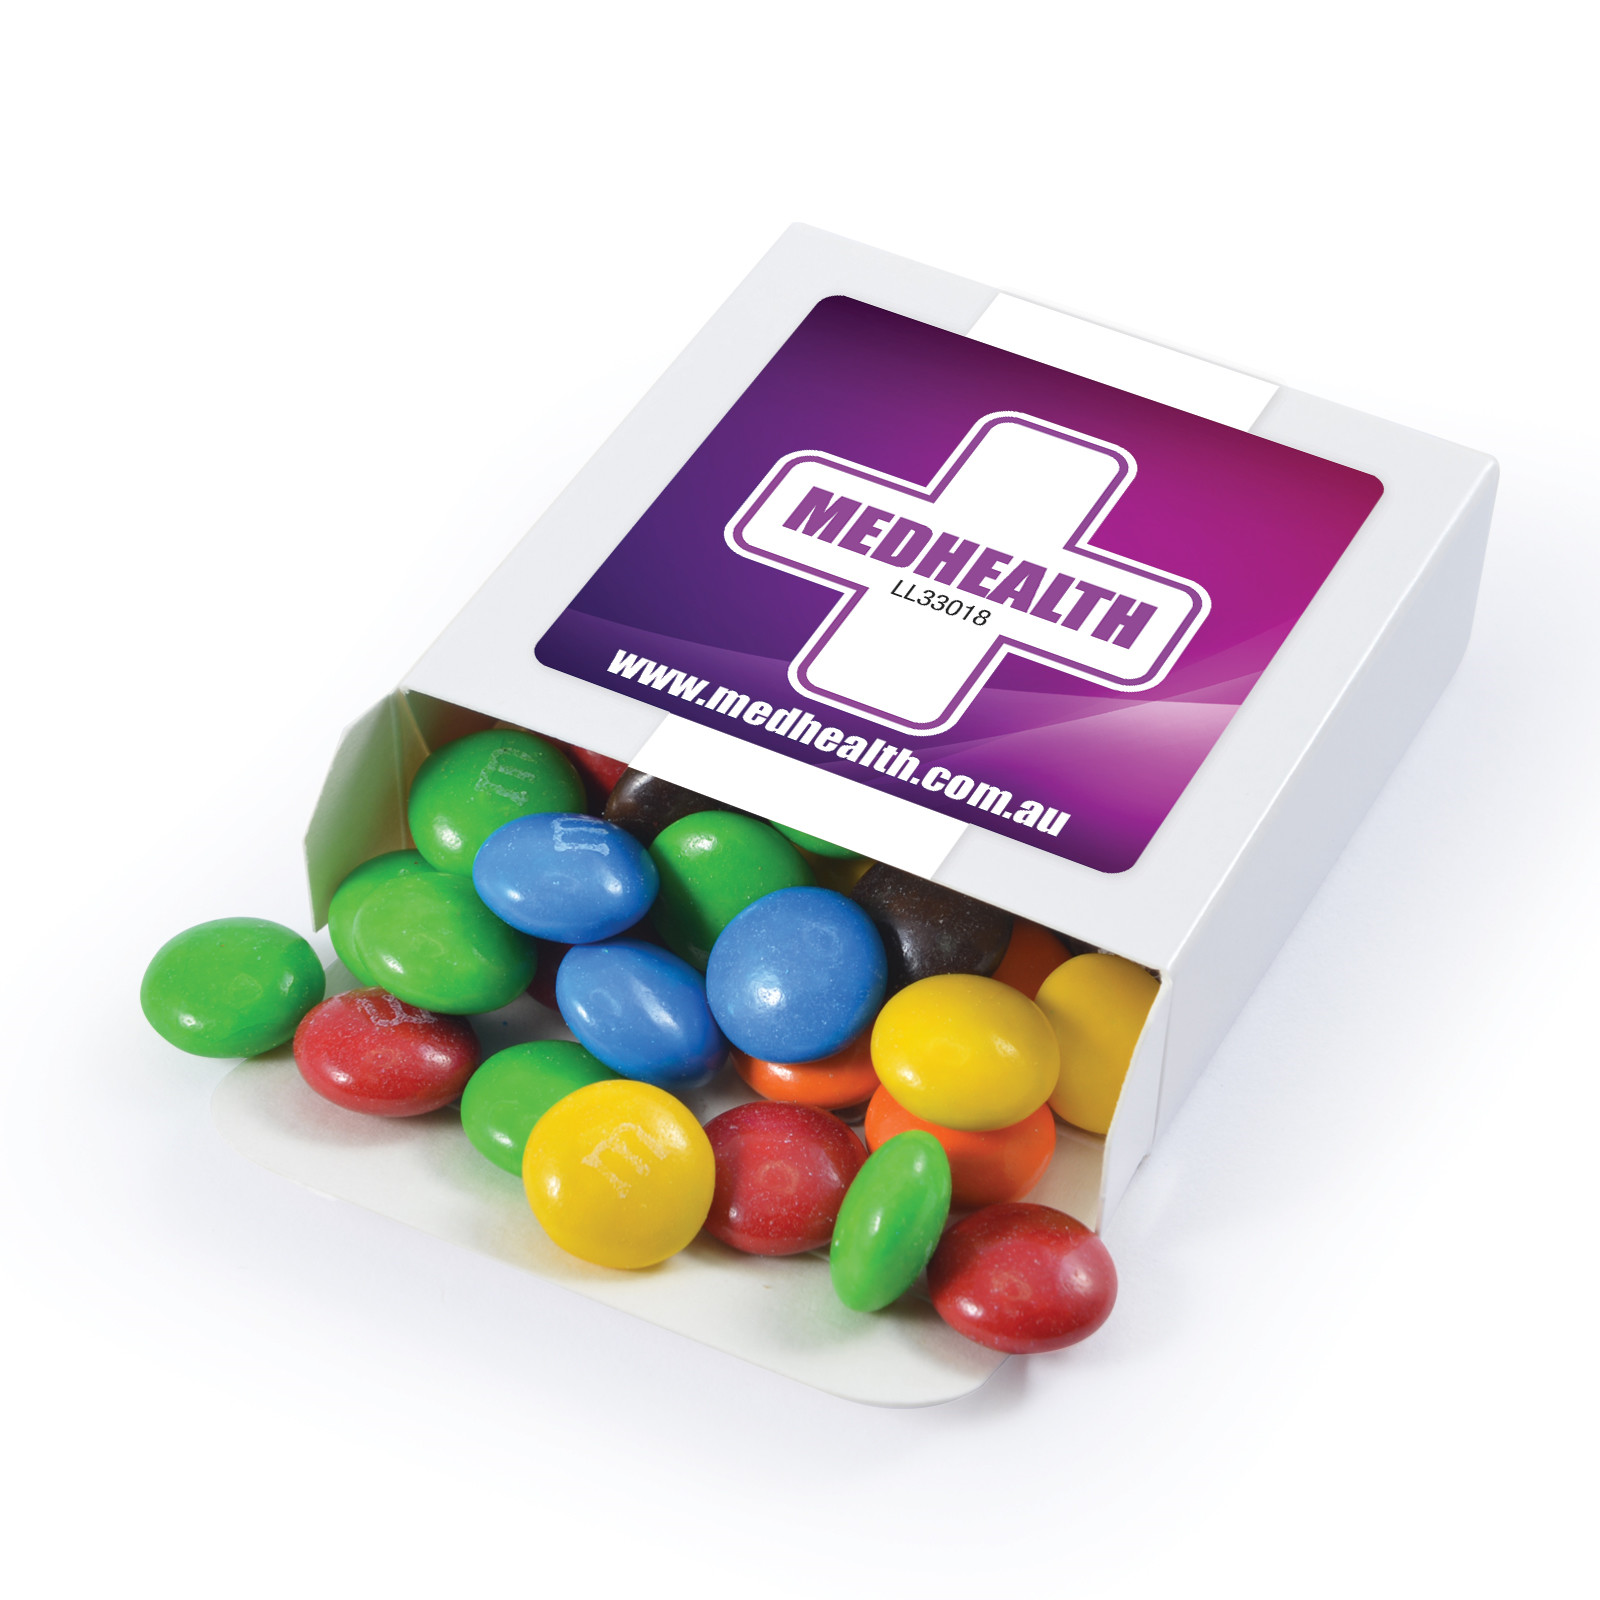 Promotional Product M&M's in 50 Gram Box